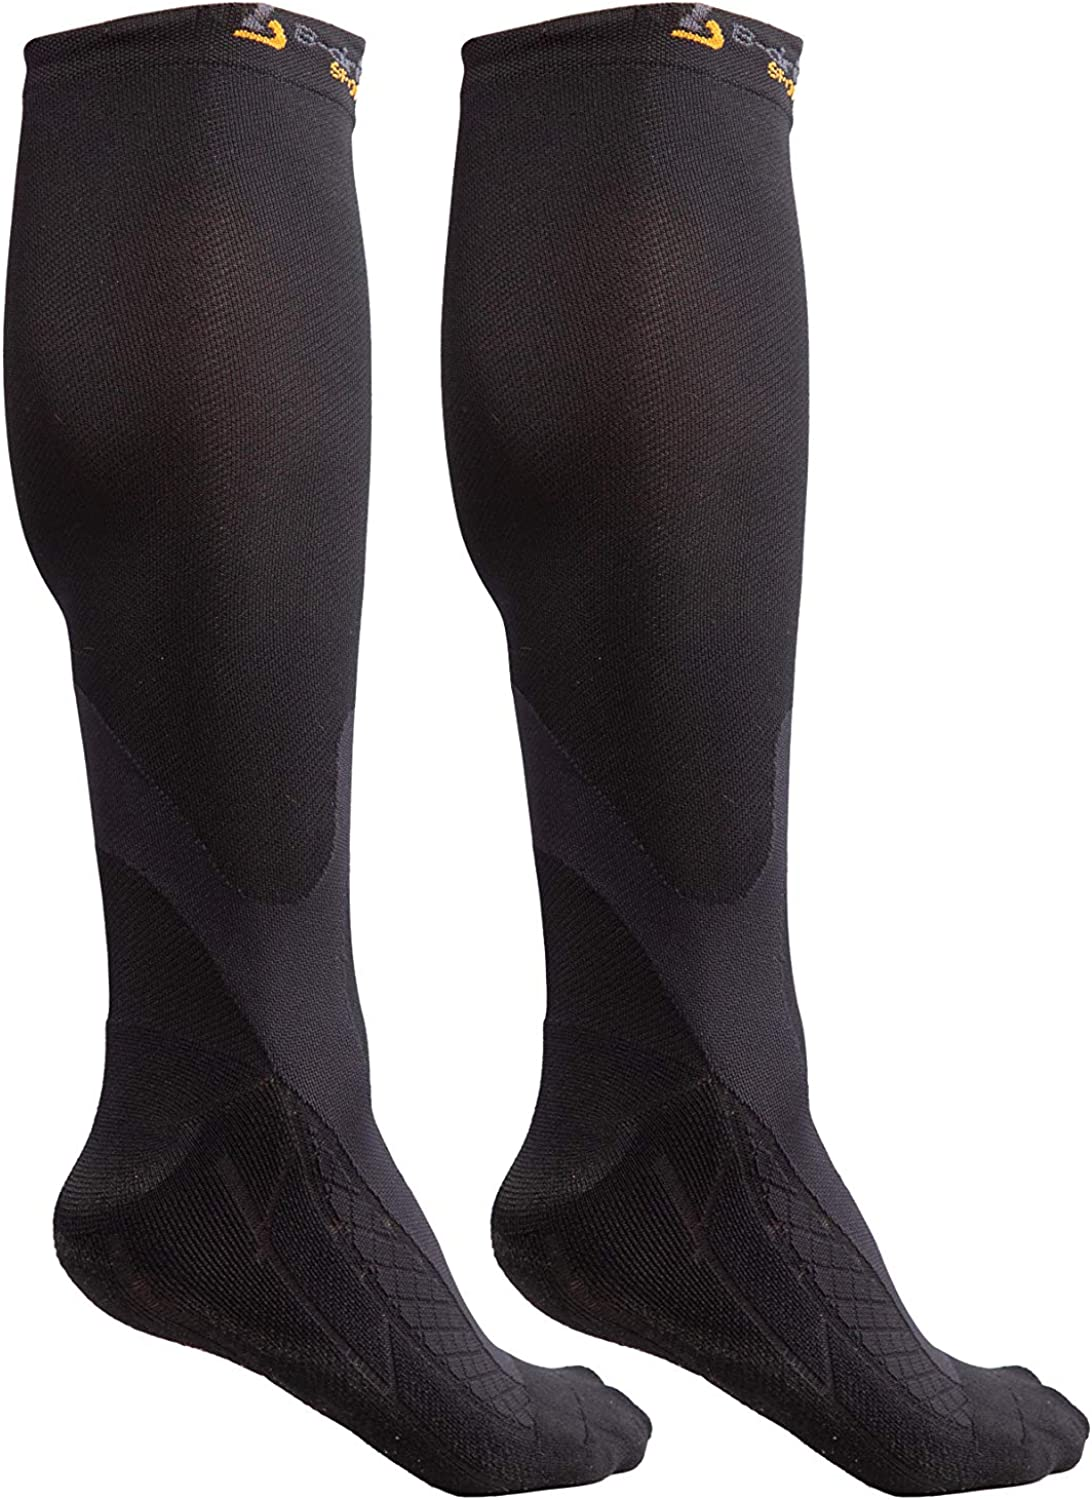 Graduated 20-30mmHG Knee High Wide Calf Athletic Compression Socks